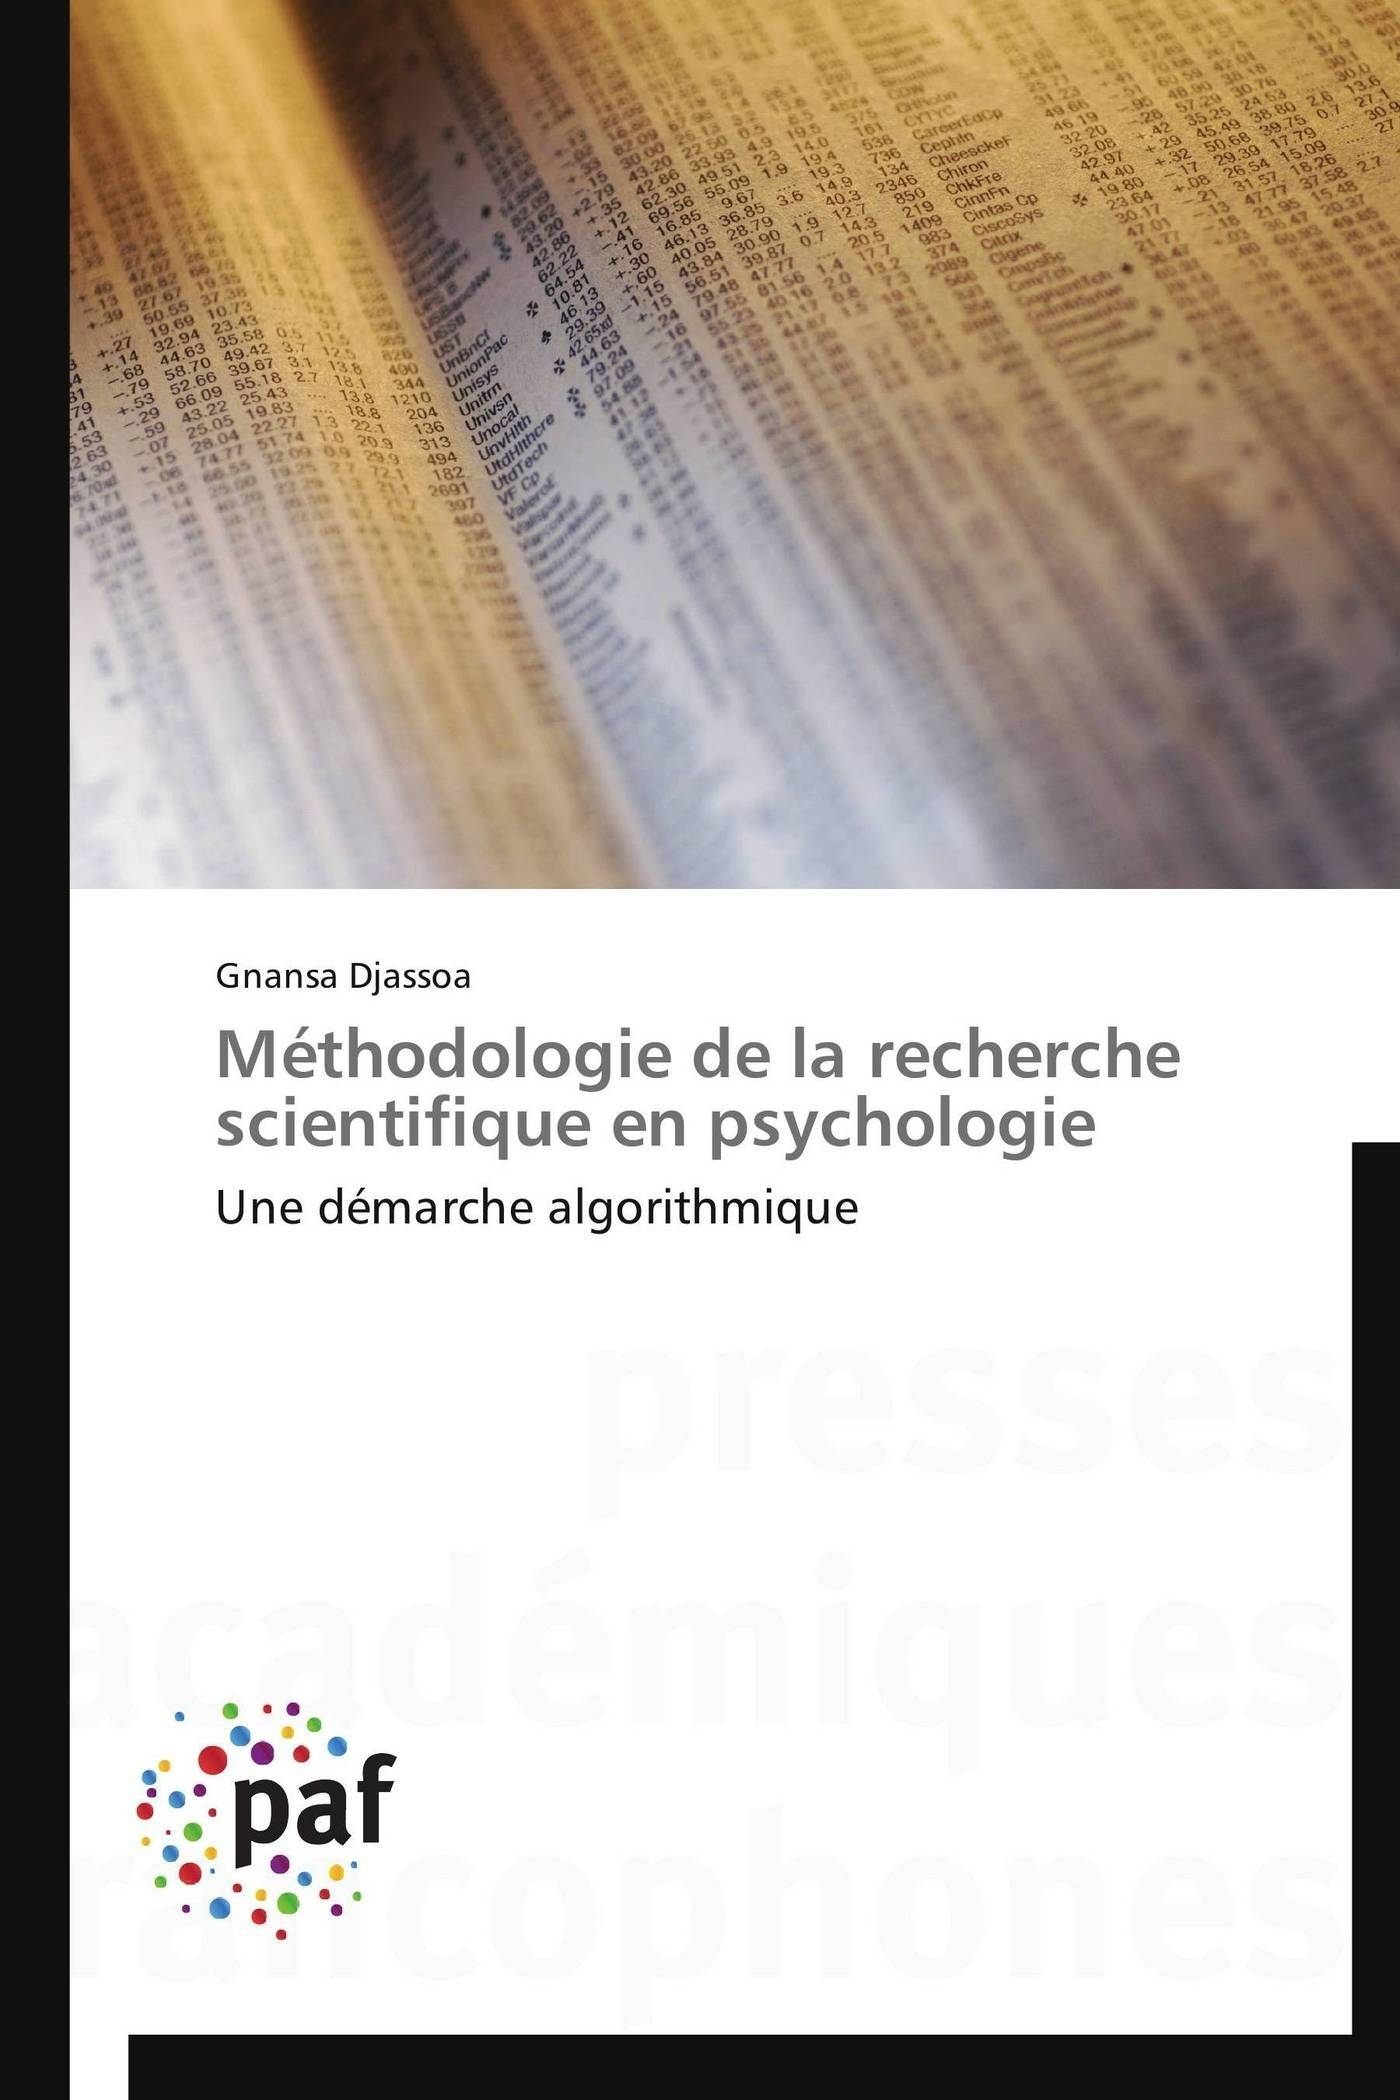 METHODOLOGIE DE LA RECHERCHE SCIENTIFIQUE EN PSYCHOLOGIE